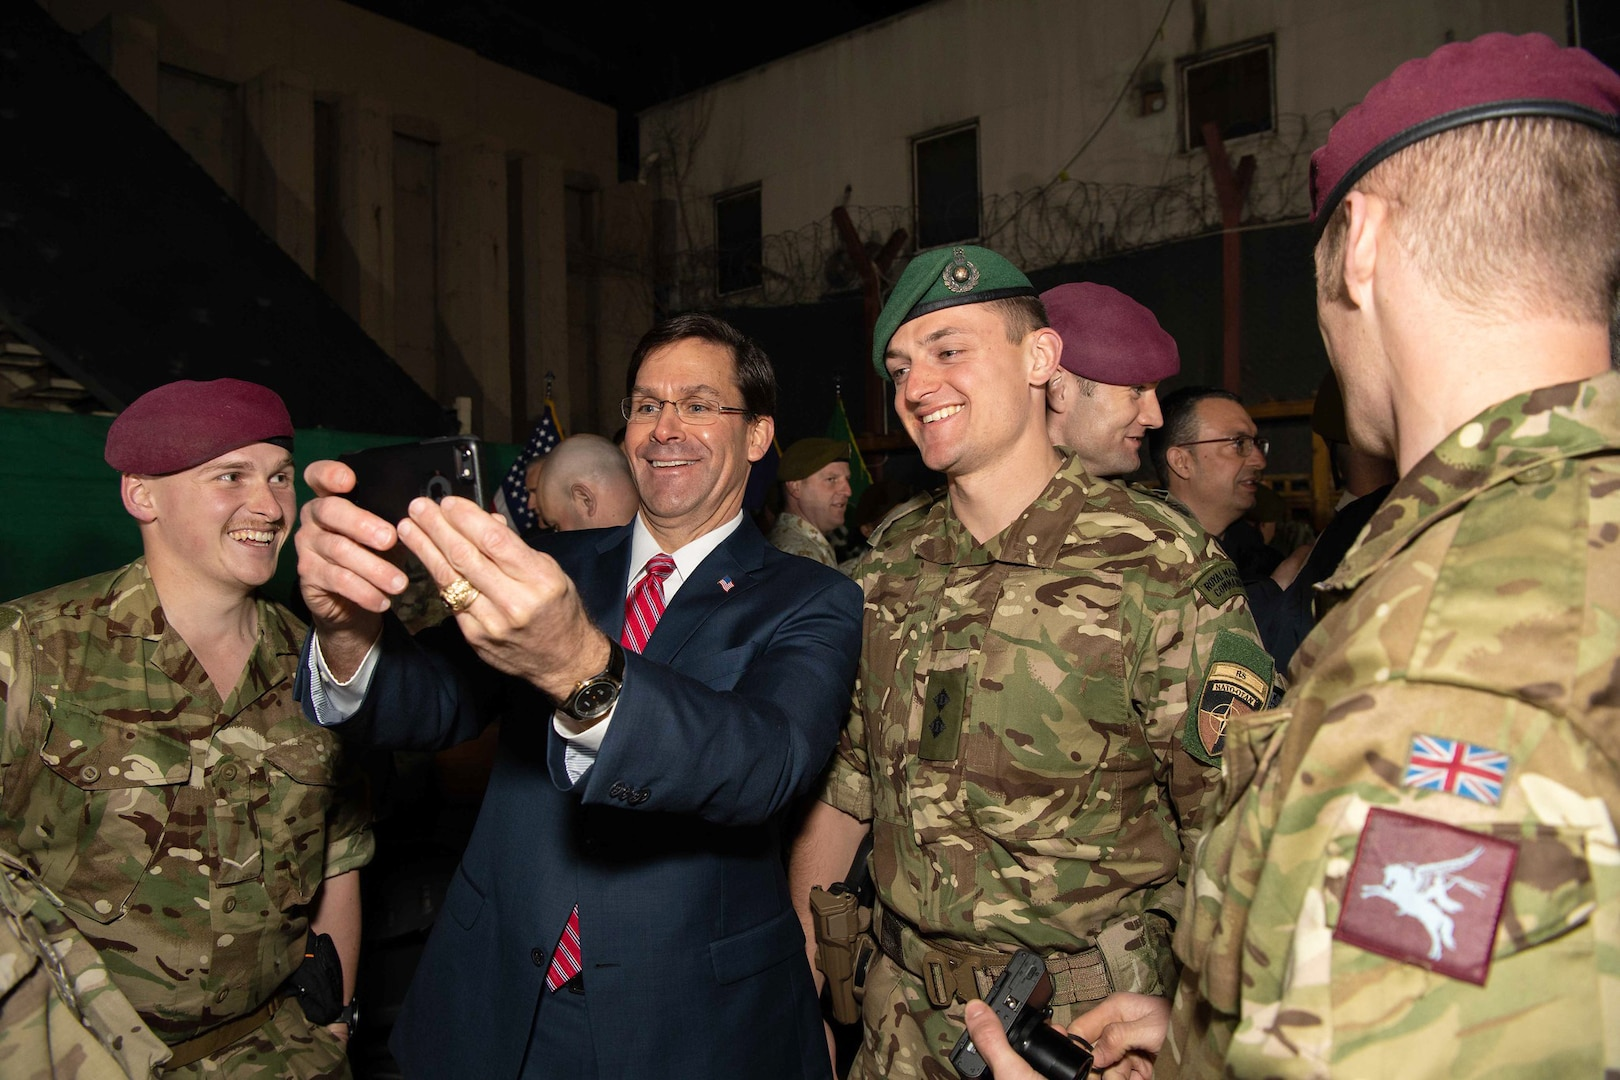 Defense Secretary Dr. Mark T. Esper takes a photo while meeting with coalition service members in Kabul, Afghanistan, Feb. 29, 2020.